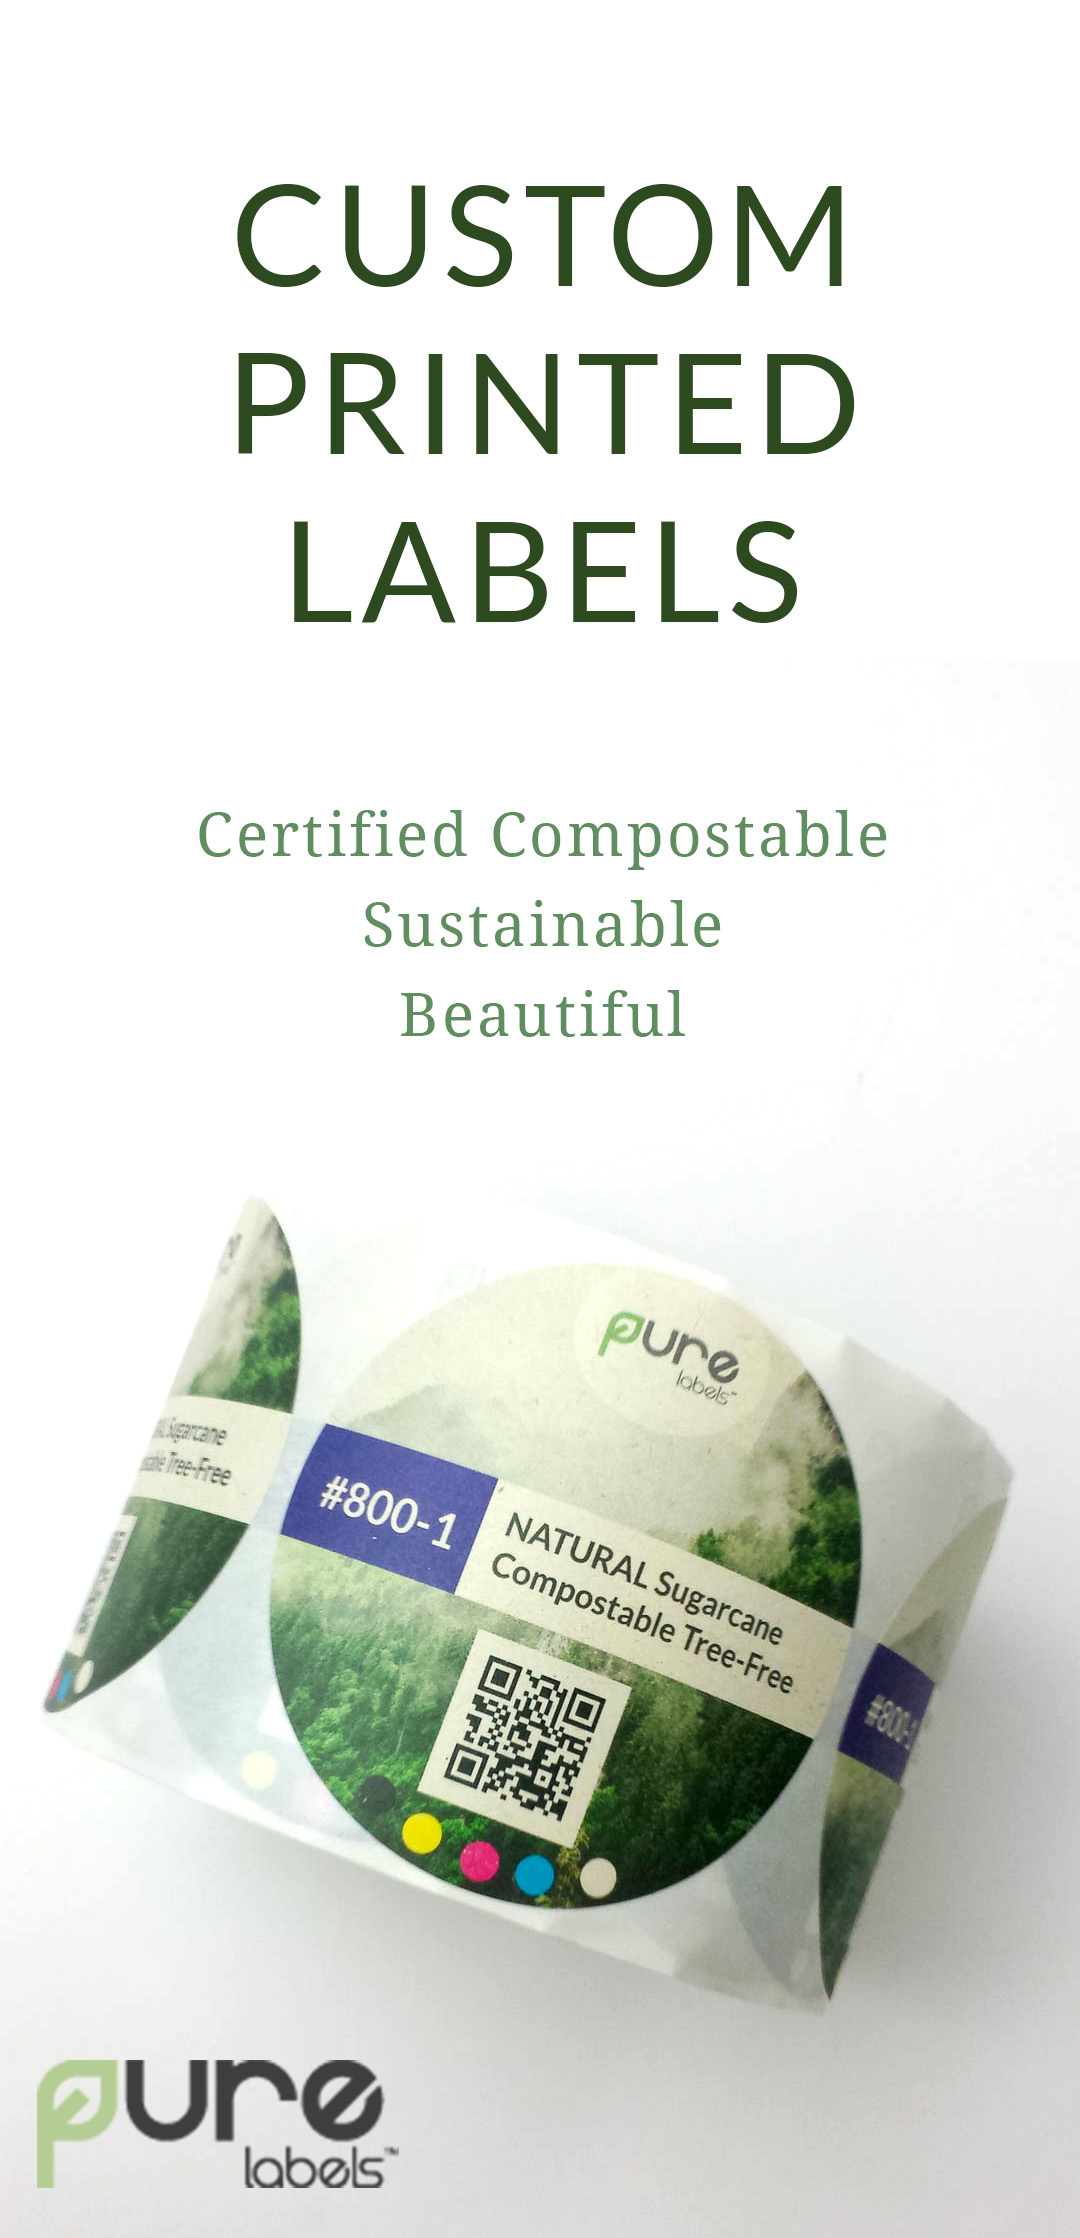 PURE Labels custom printed labels